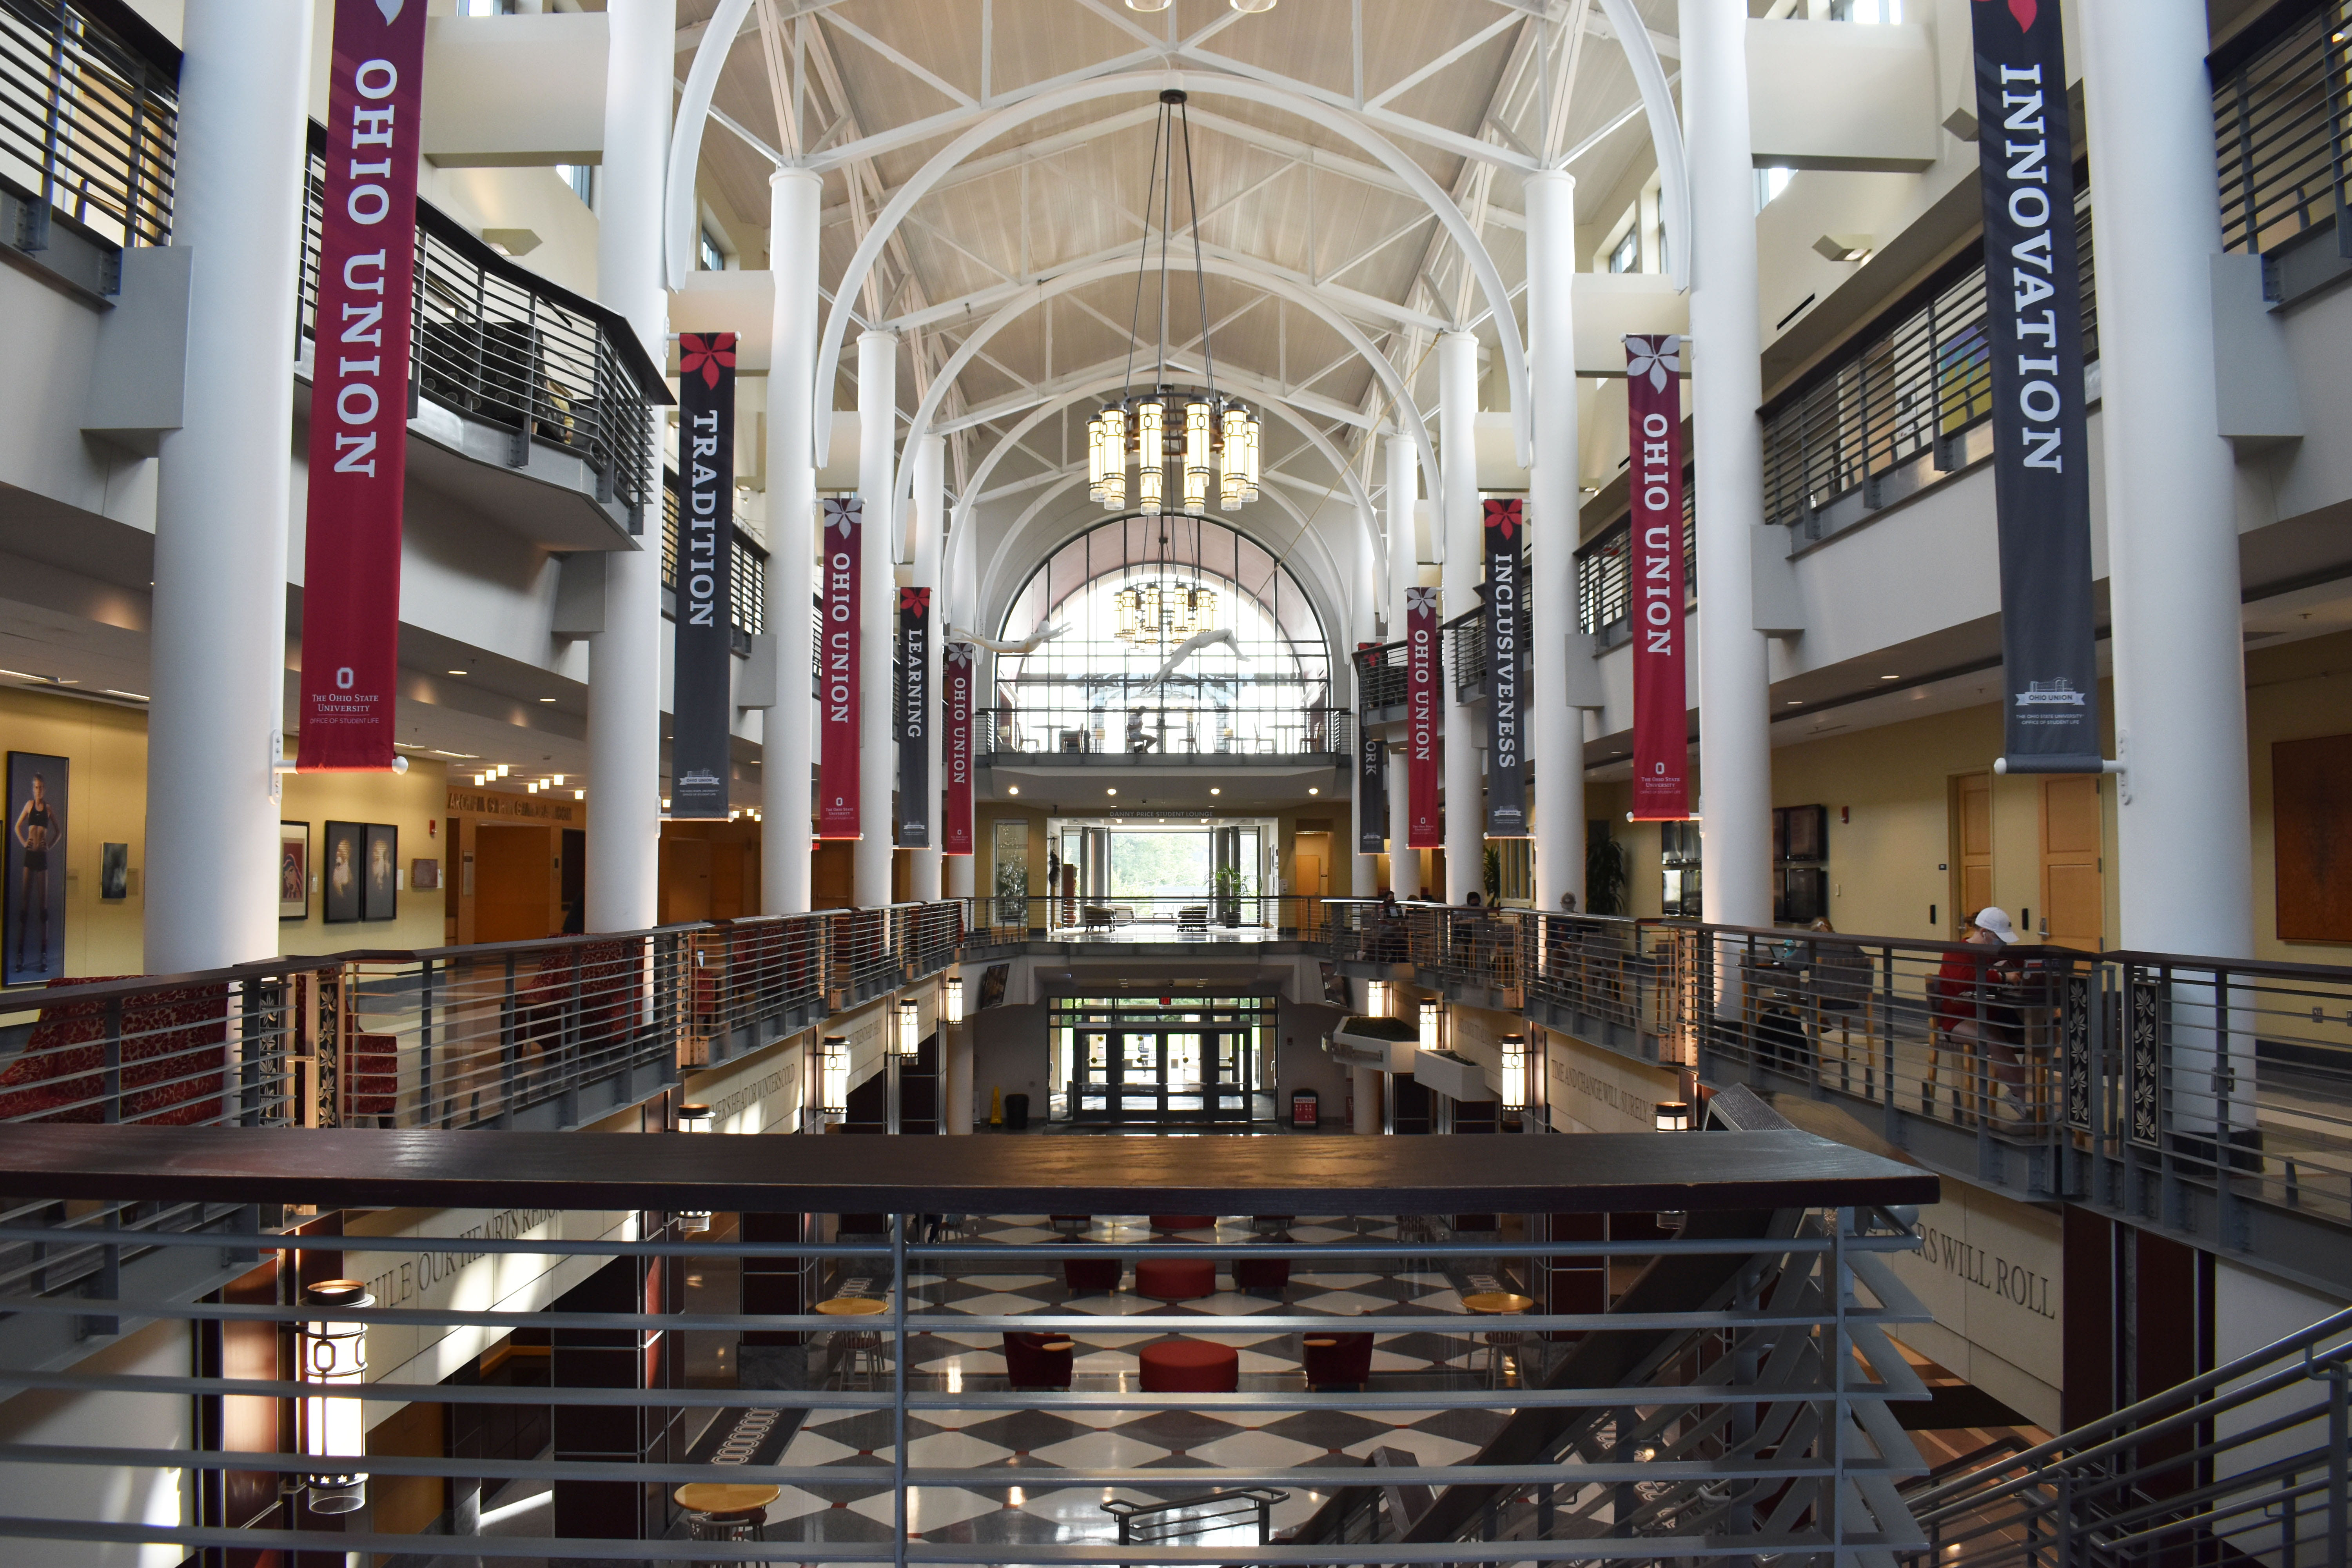 the inside of the Ohio Union